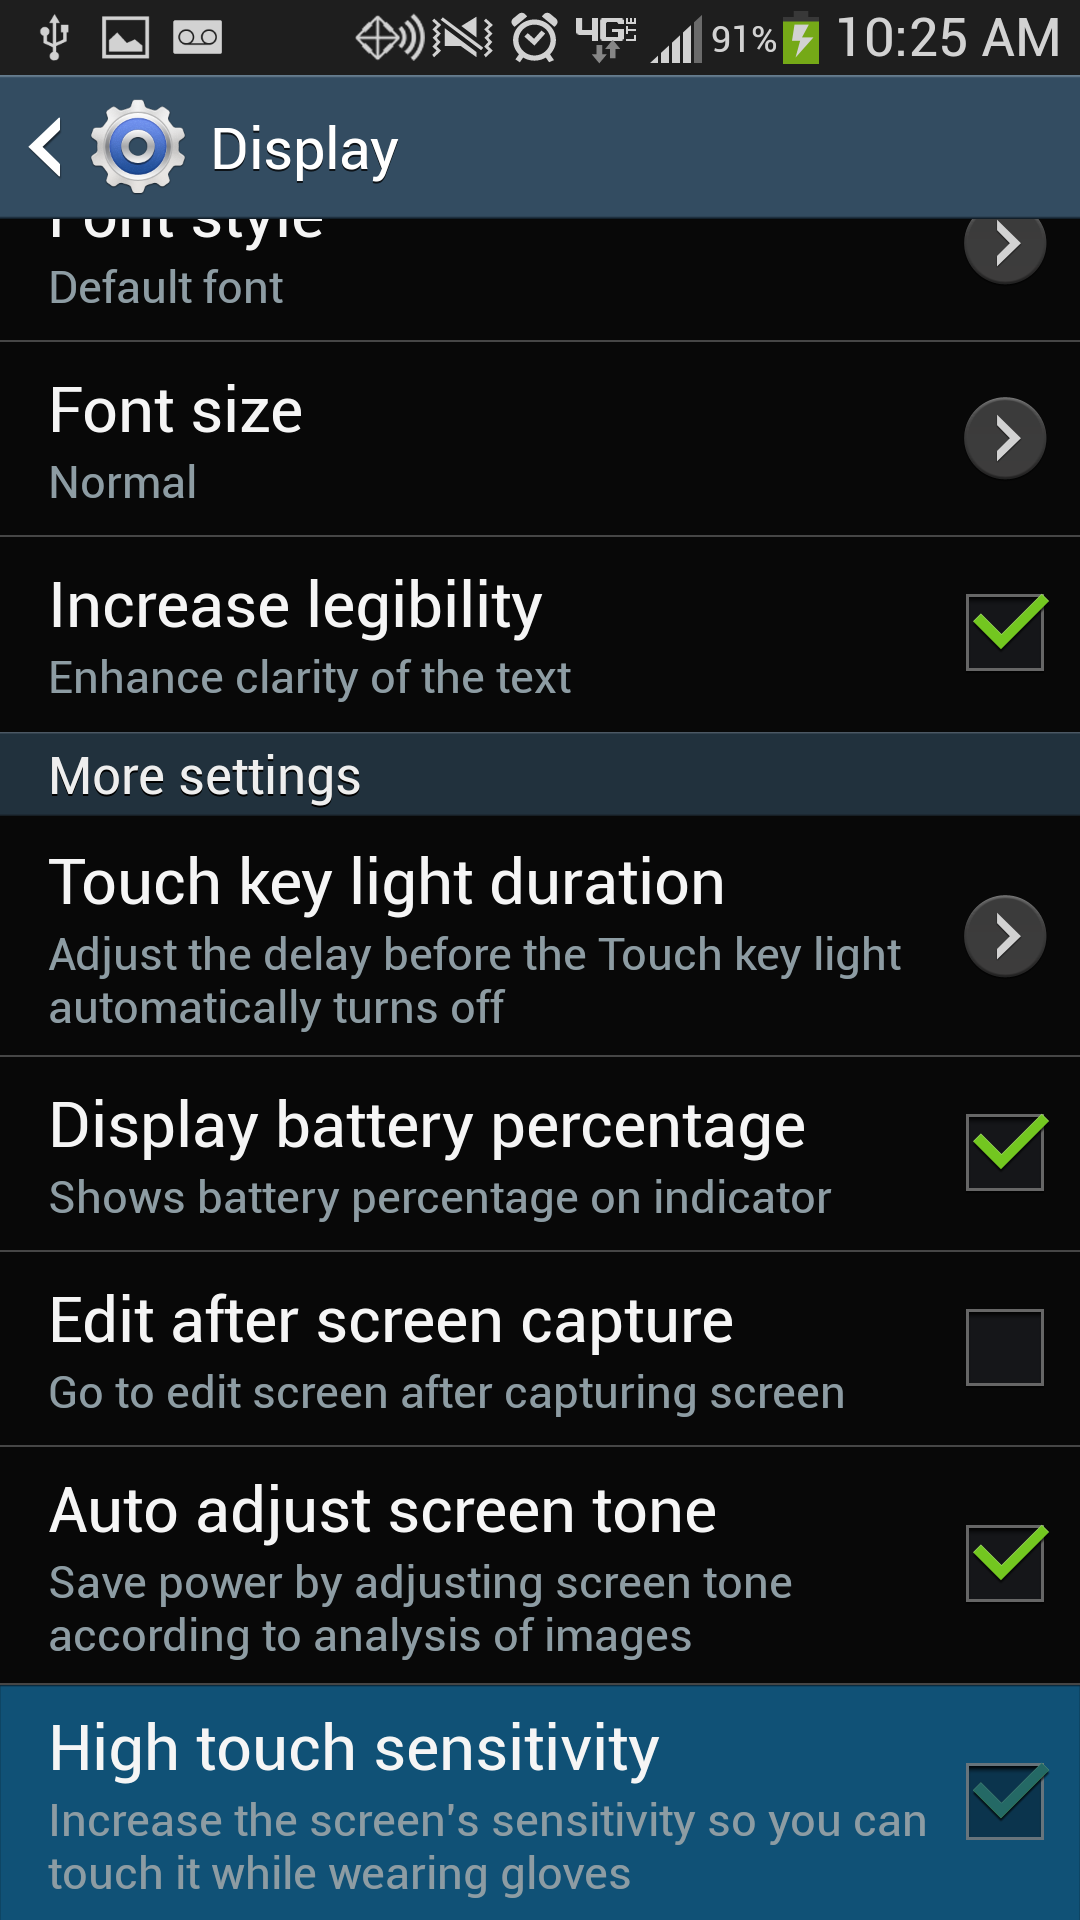 Galaxy S4 High Touch Sensitivity